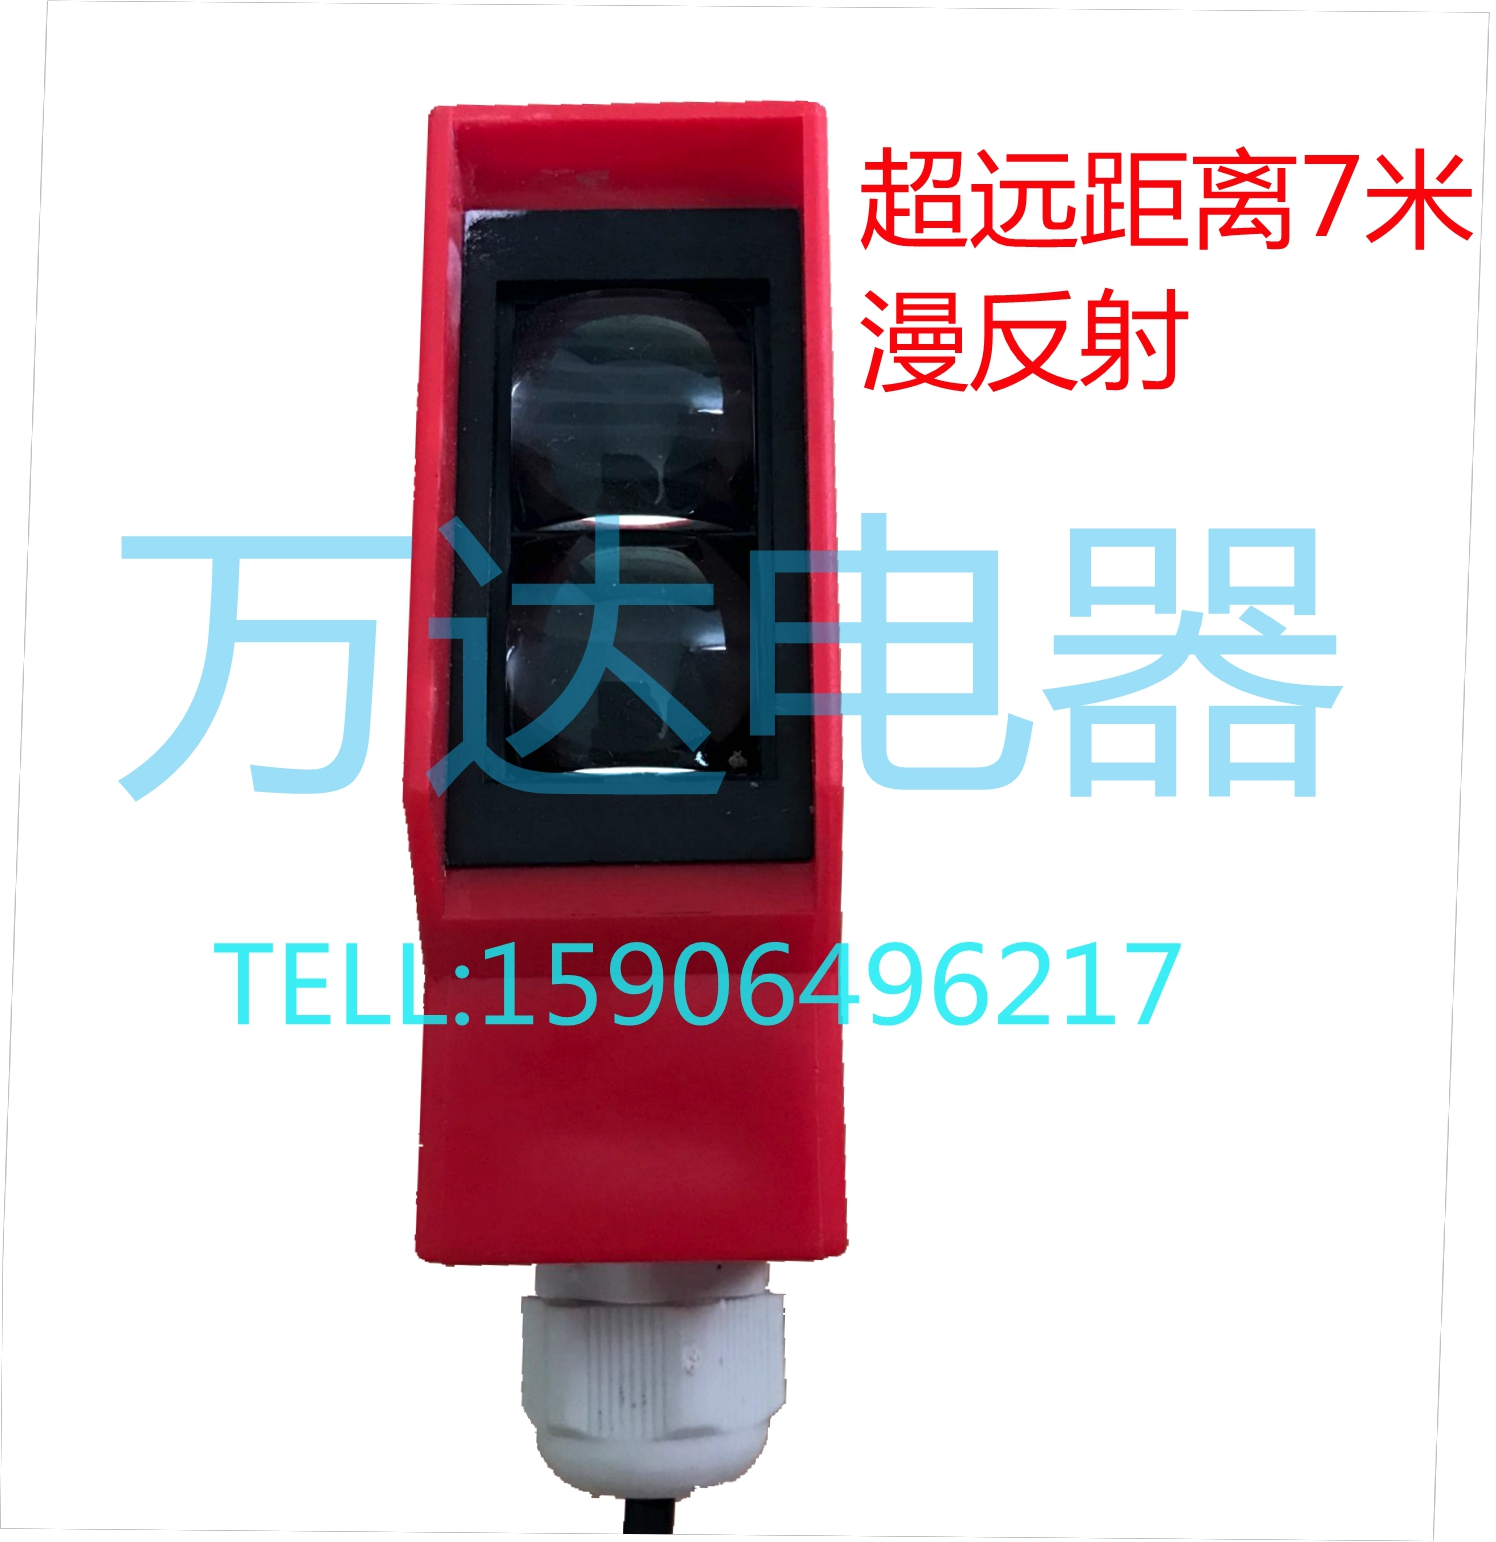 Ultra-long distance photoelectric switch E100-DS700M1 Infrared diffuse sensor Water-proof car wash